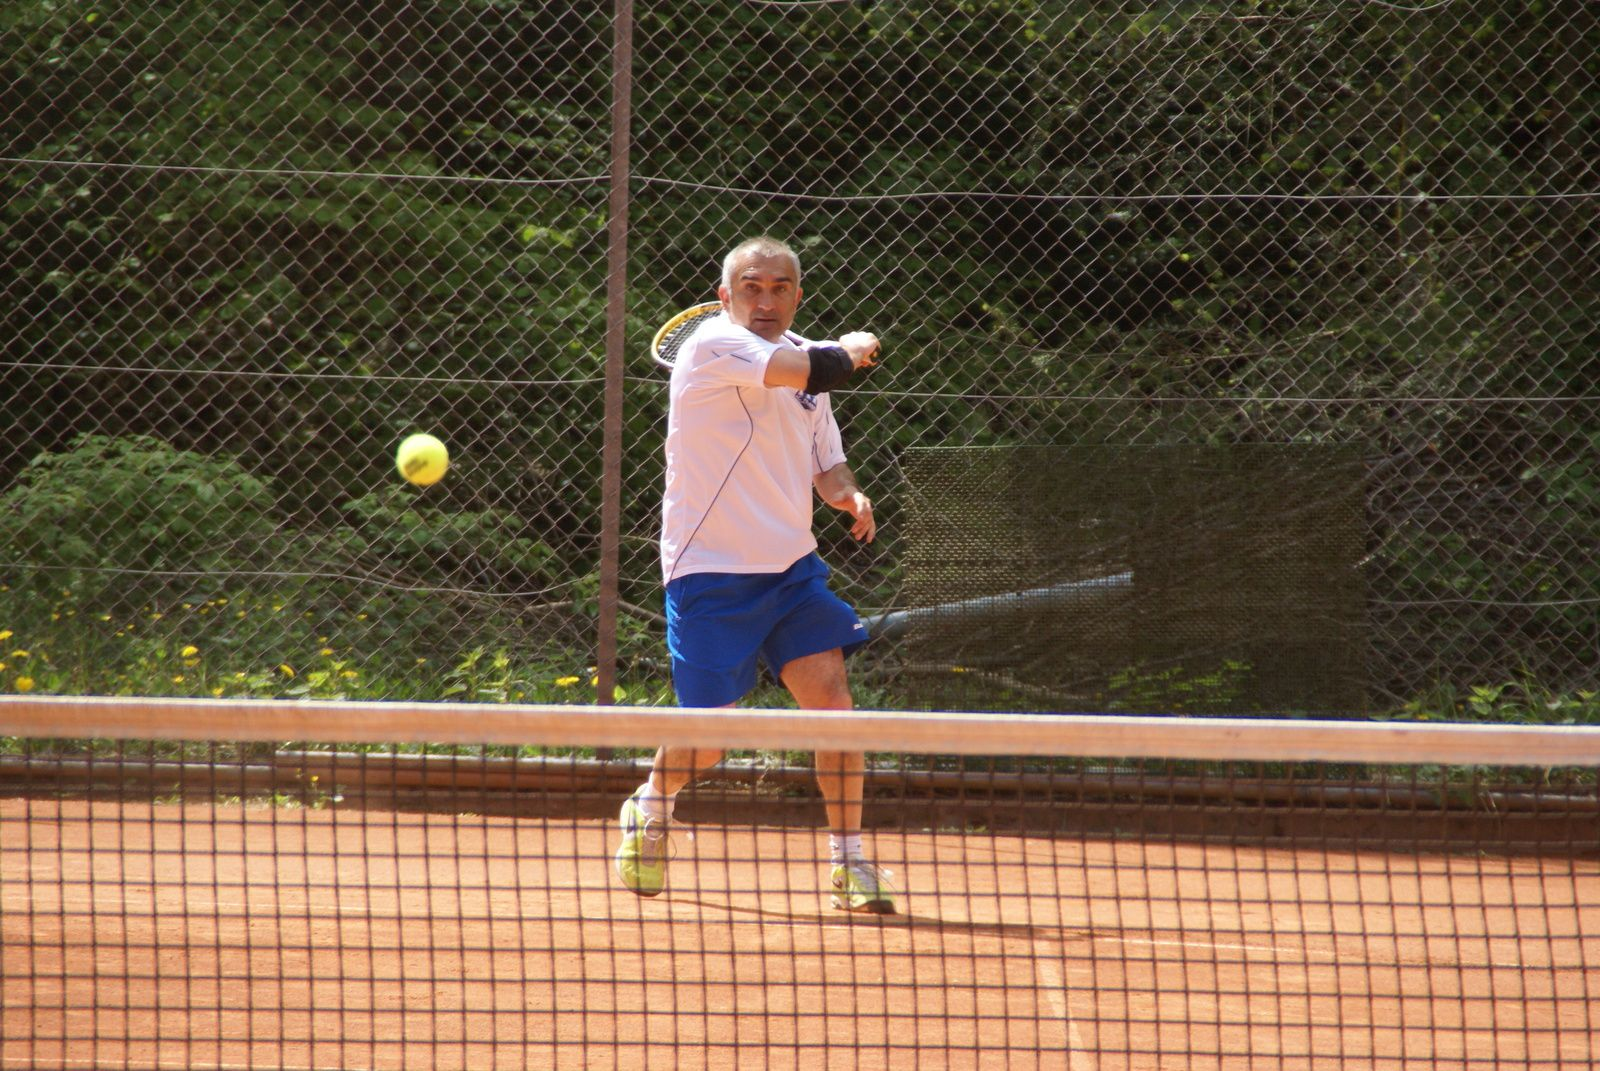 Soleil sur le tennis thannois ce week-end !